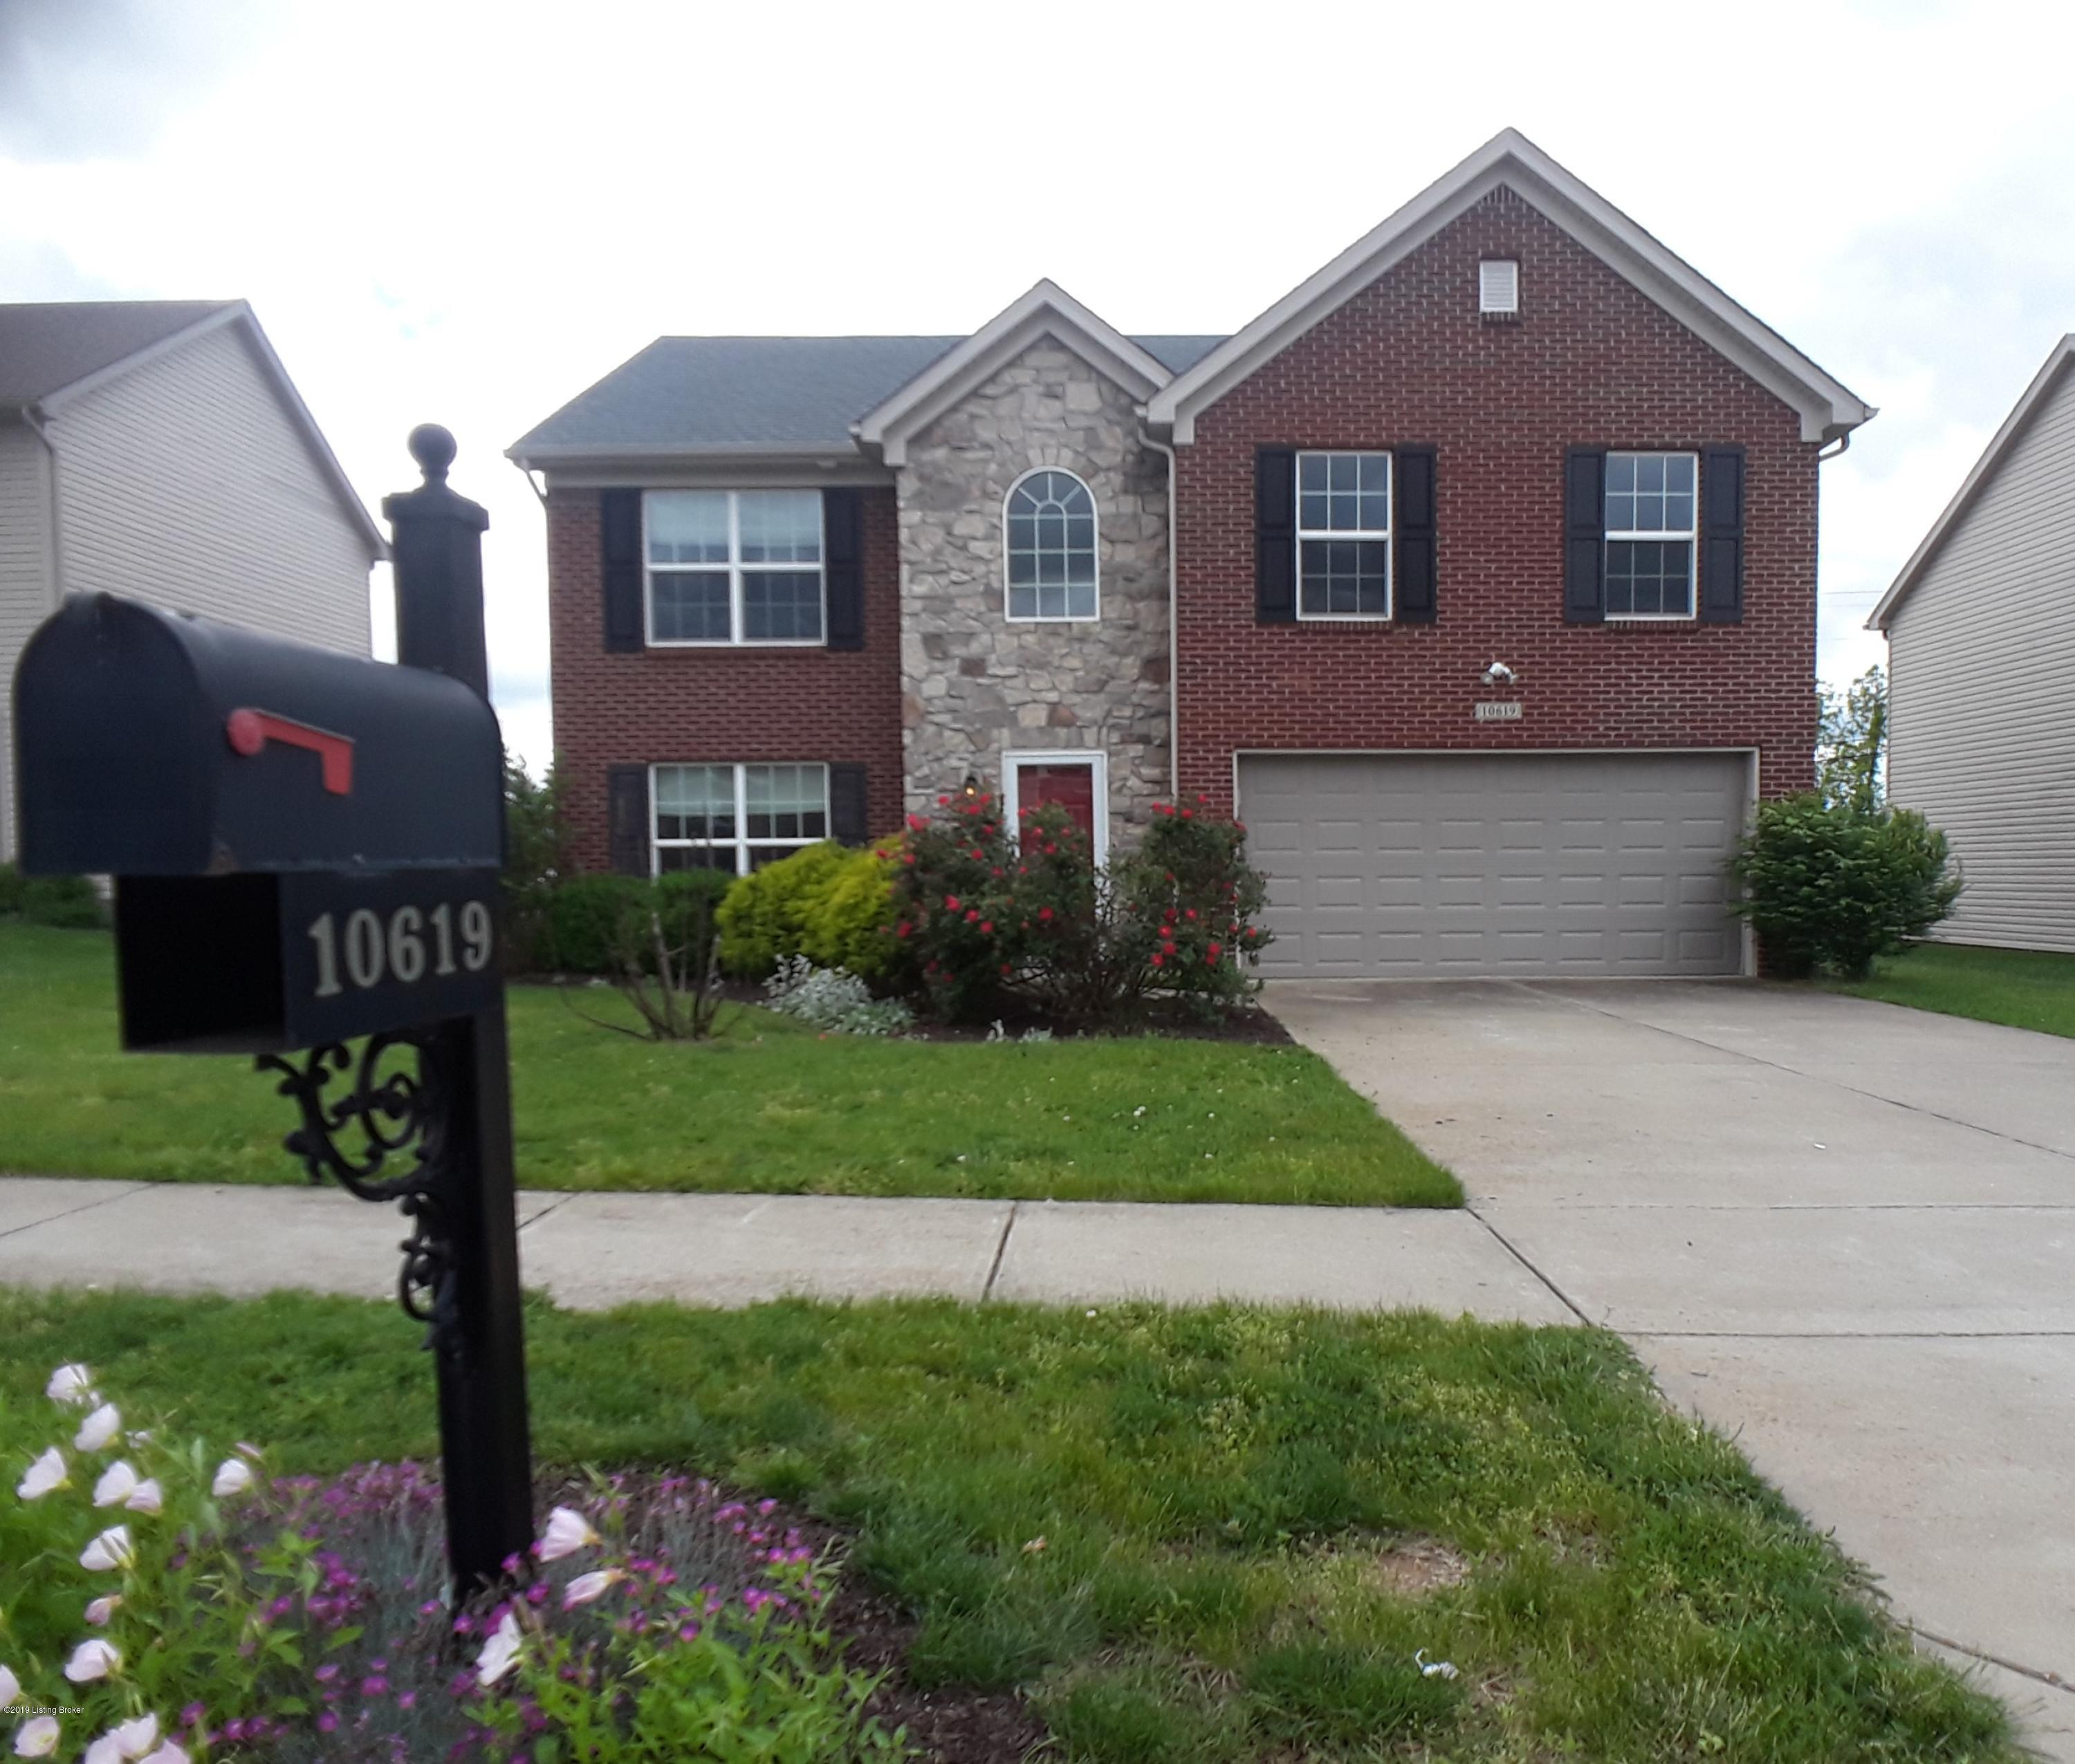 10619 Brookchase Ct, Louisville, Kentucky 40228